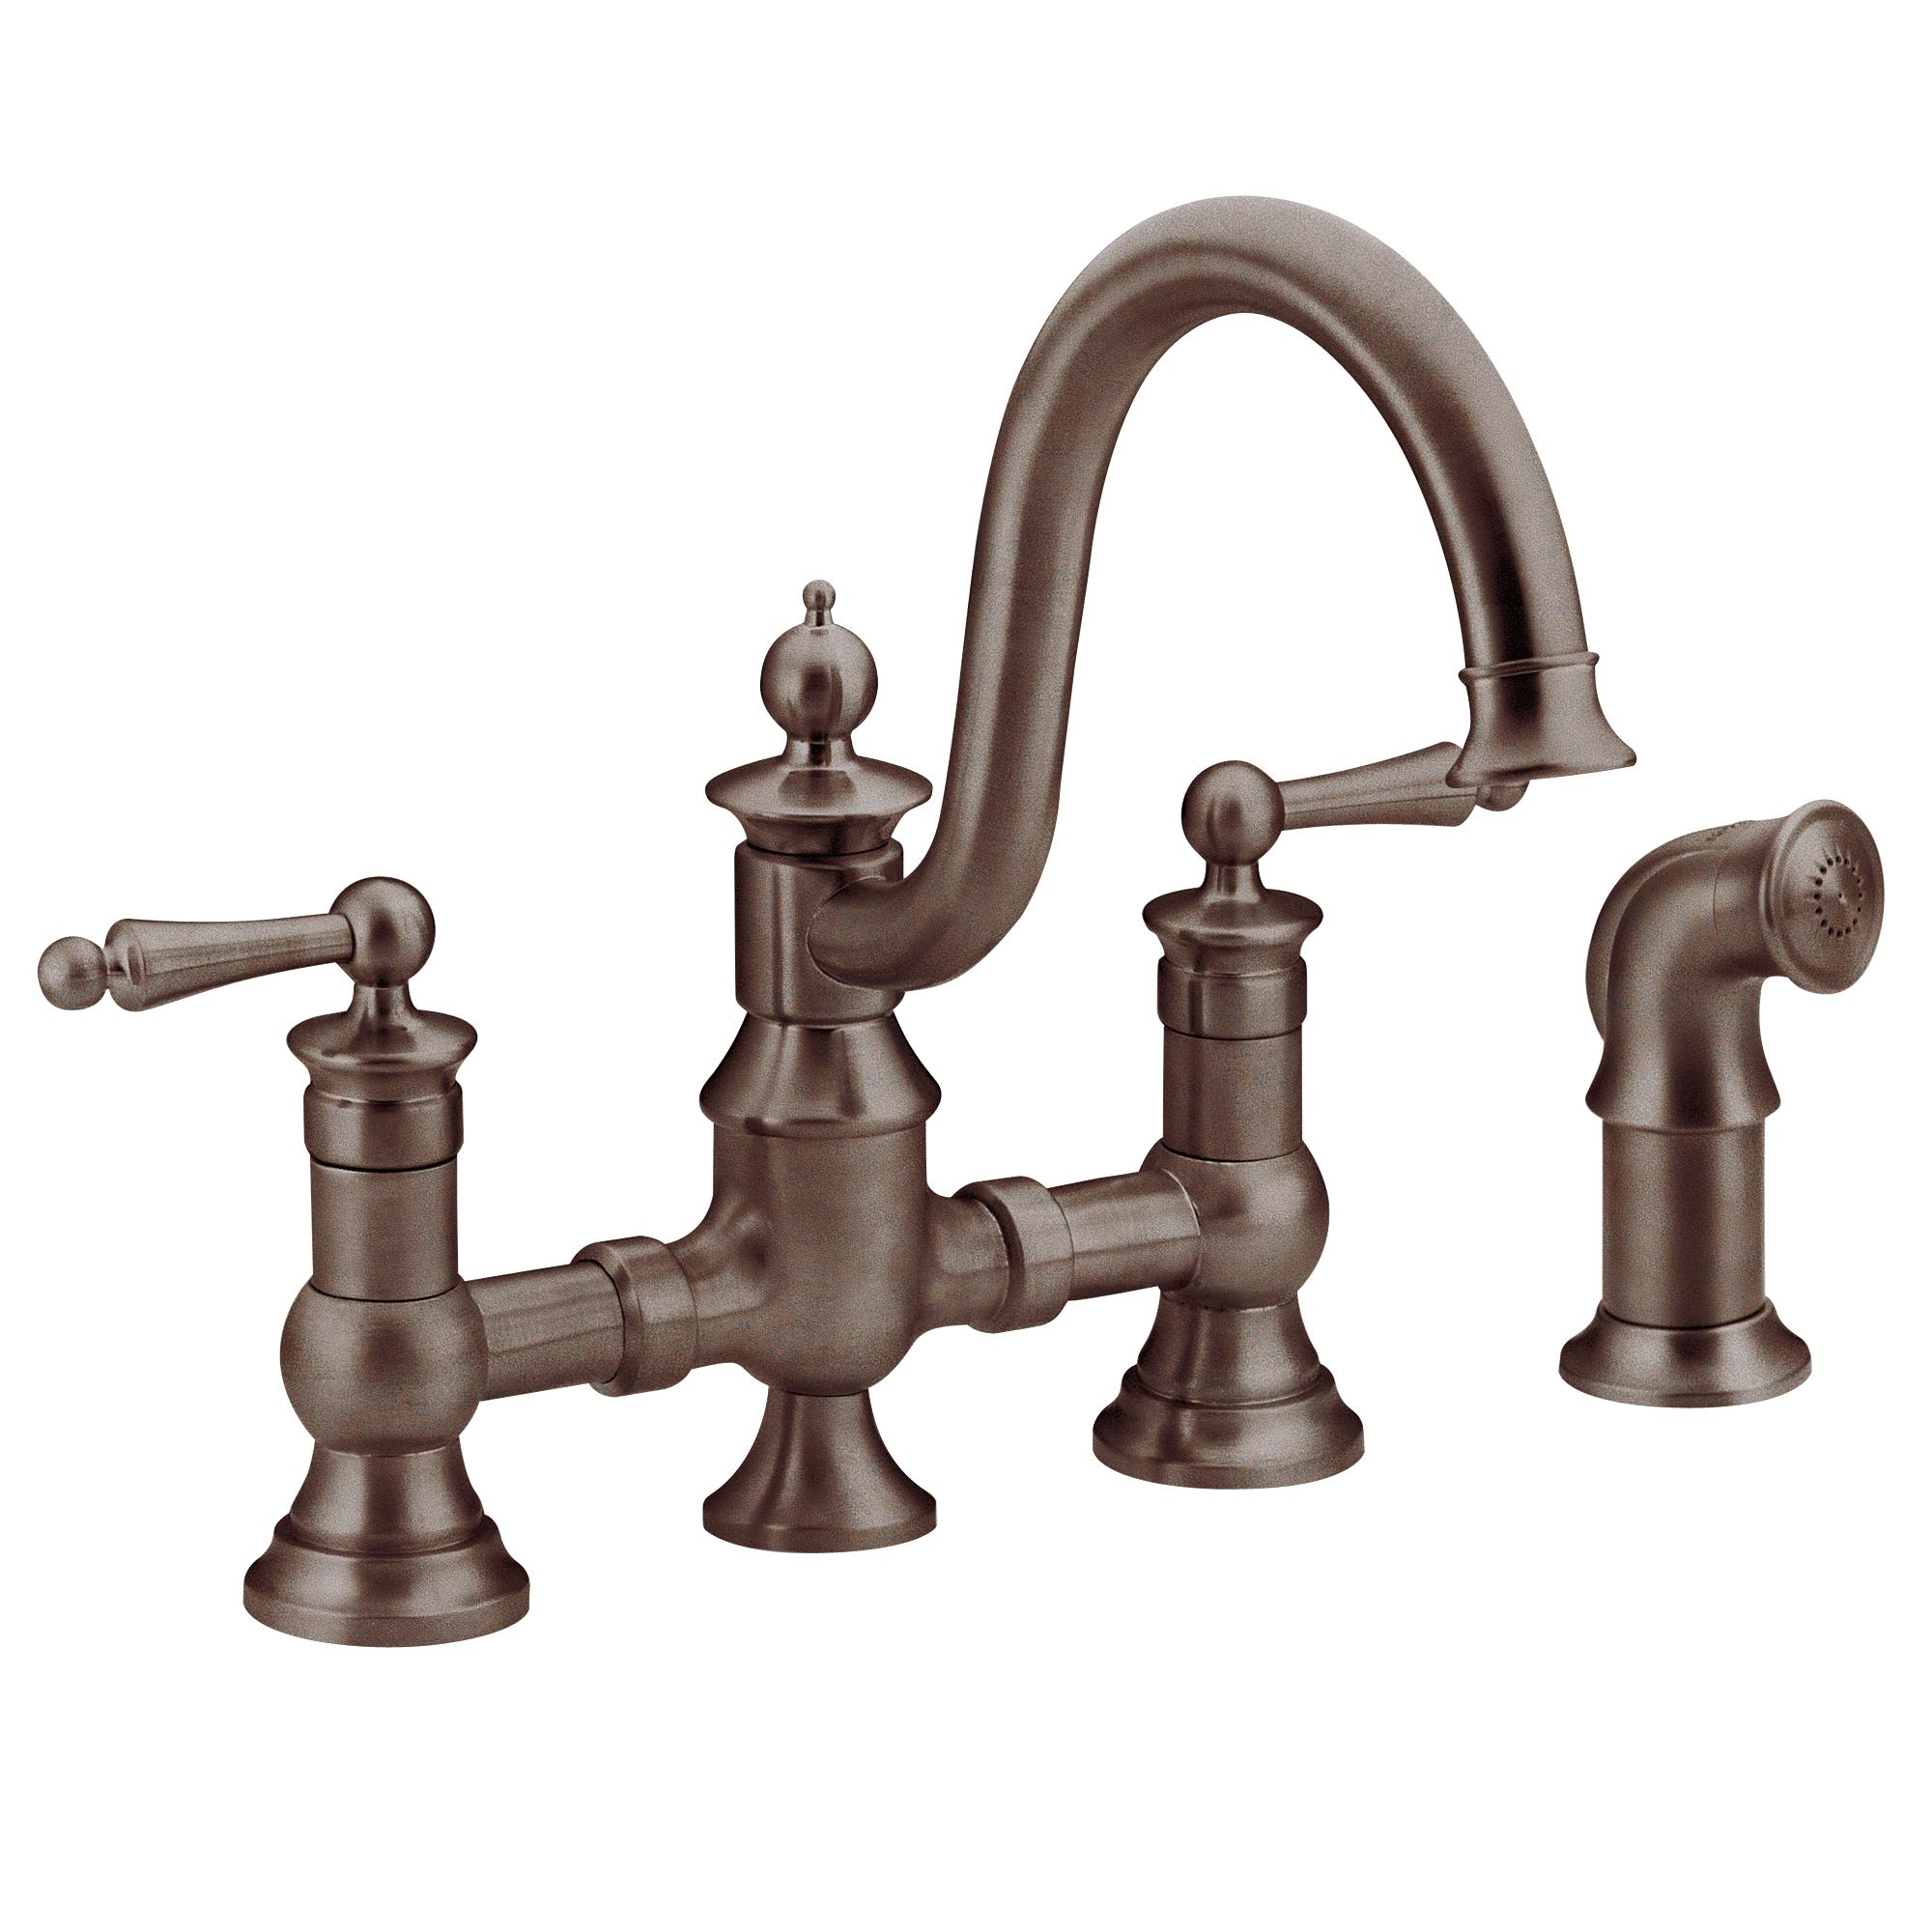 ideas giagni warranty with contemporary faucets your walmart bathroom hole faucet ki kohler down dream create moen single home sink pull kitchen brands depot farmhouse